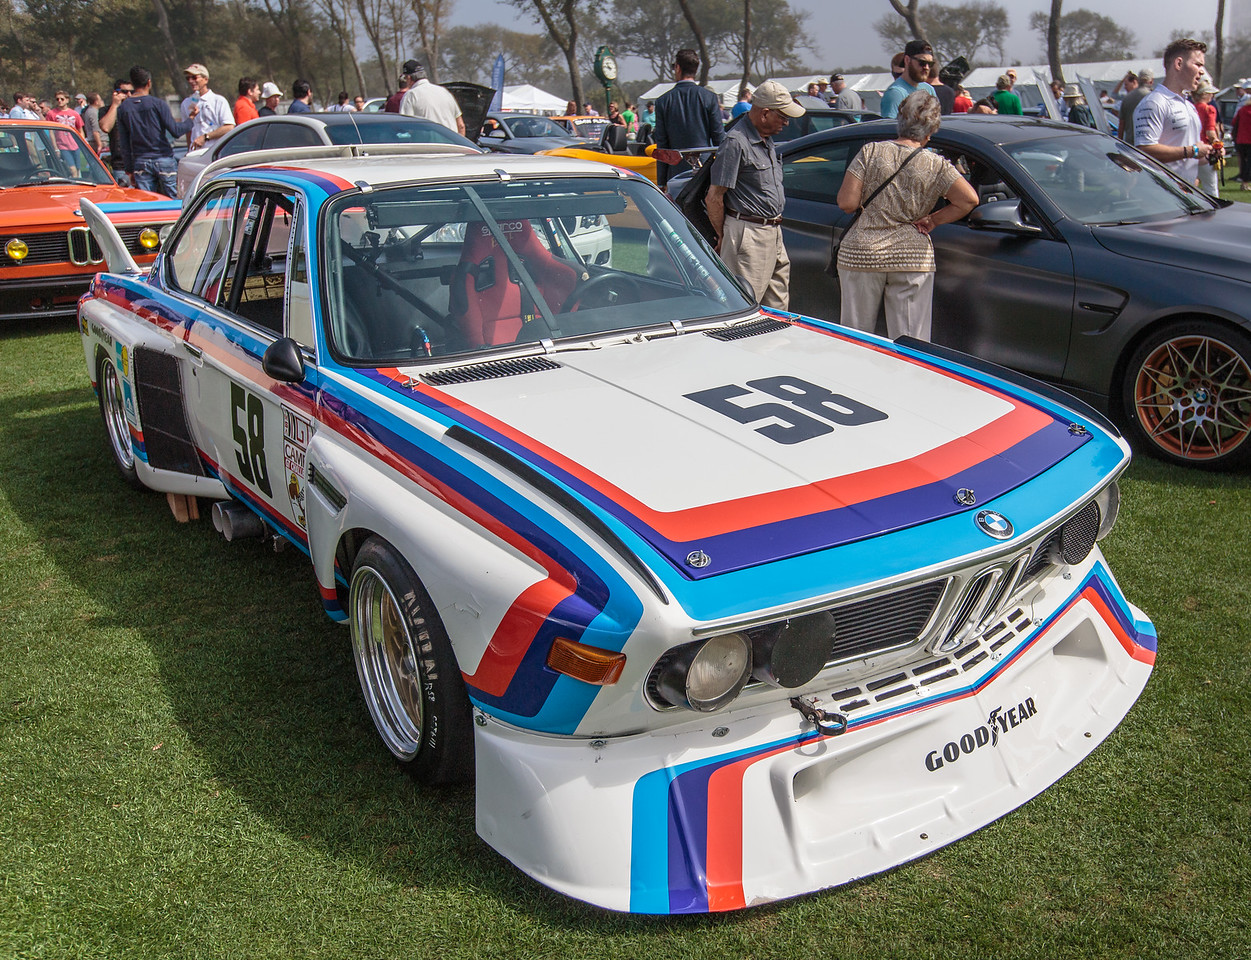 1974 BMW  3.5 CSL driven by Stuck and Posey